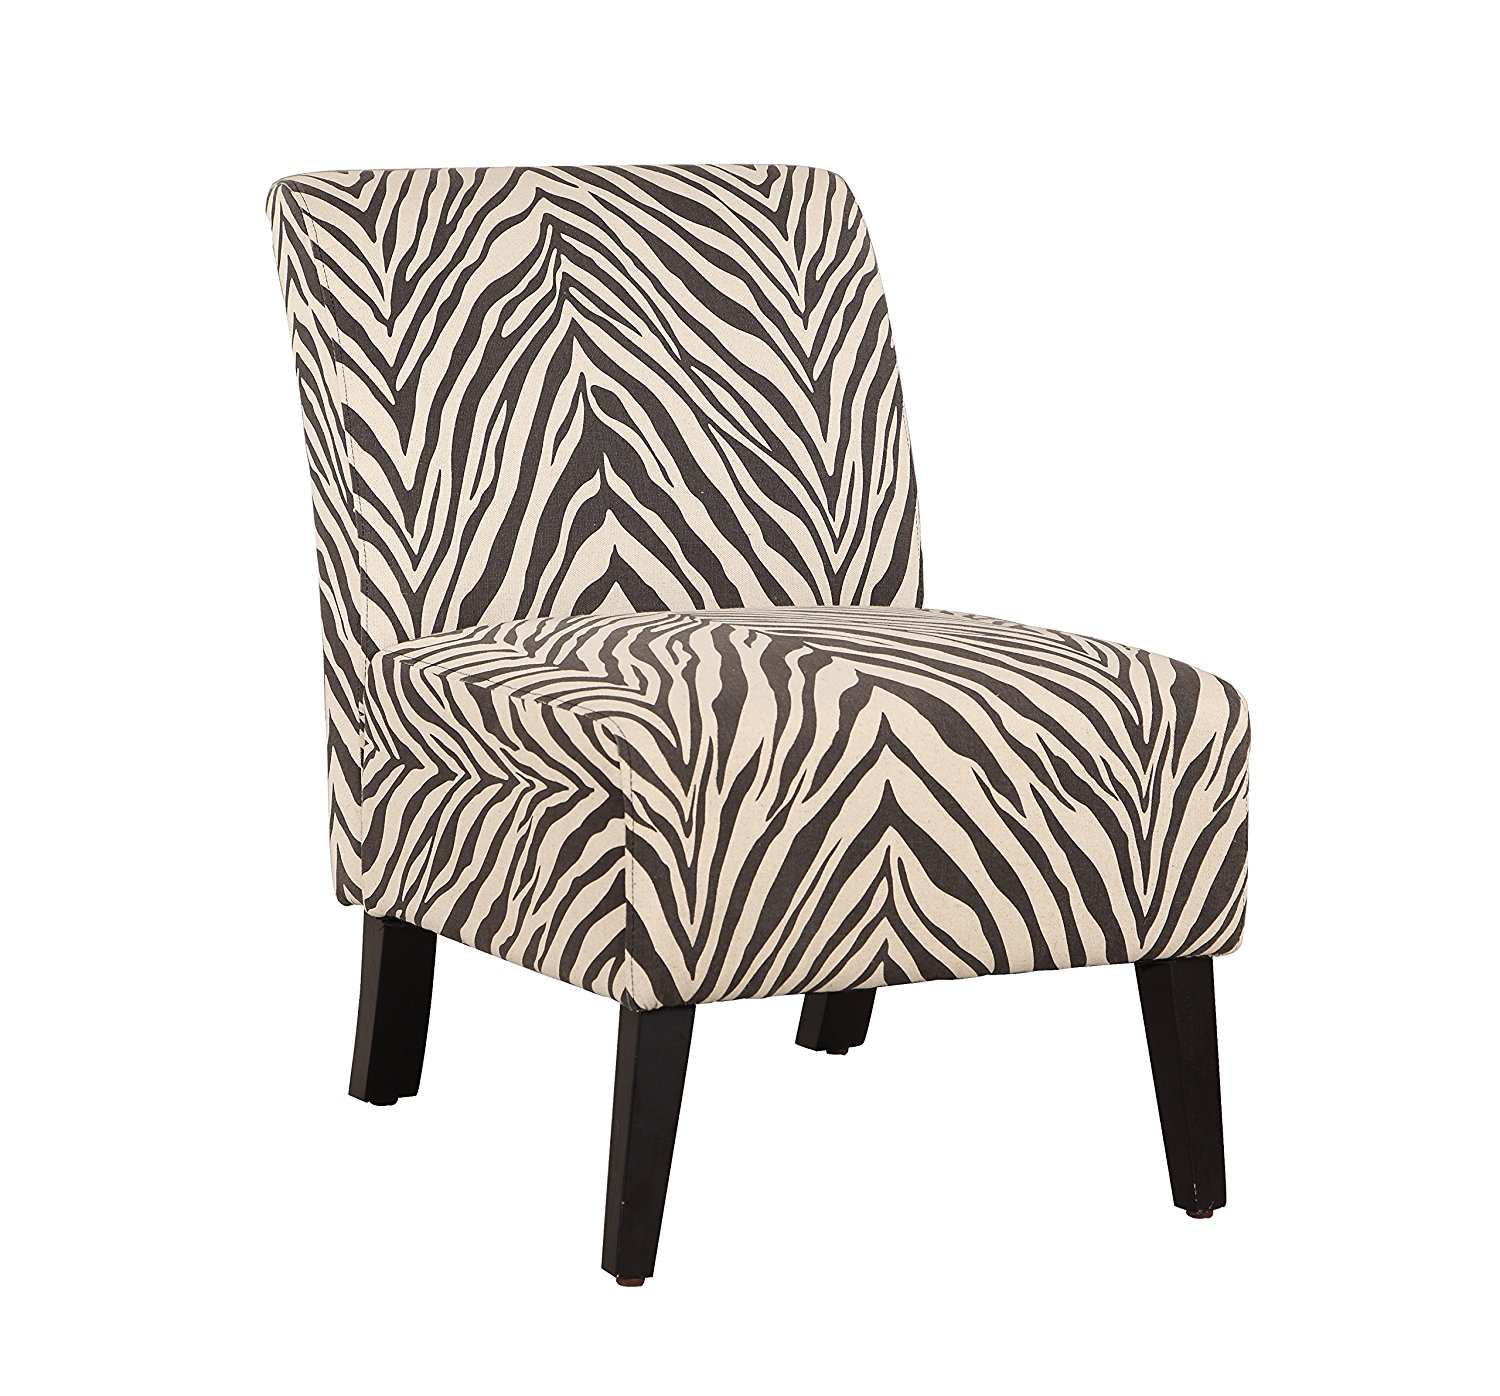 Zebra Accent Chair Zebra Print Chair A Versatile Chair Cool Ideas For Home